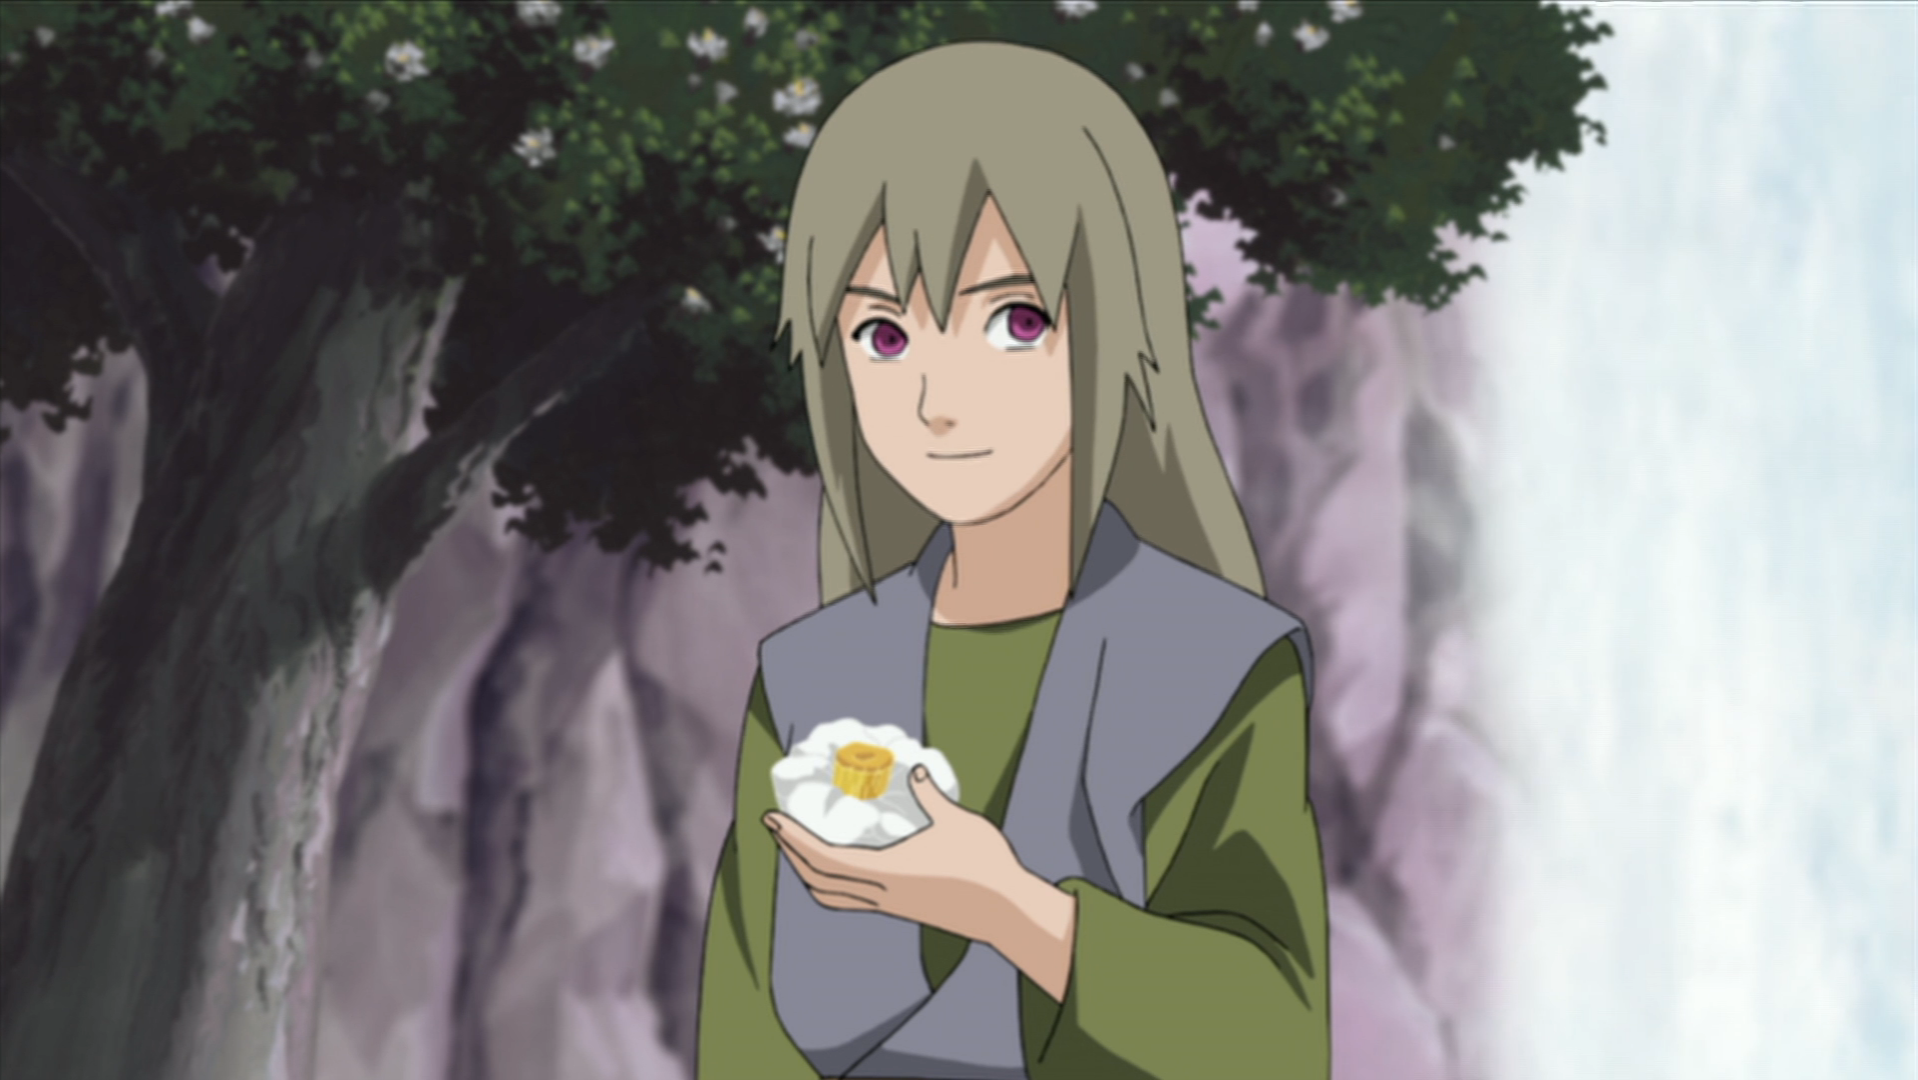 so about YAGURa & his connections to The filler chareter ...